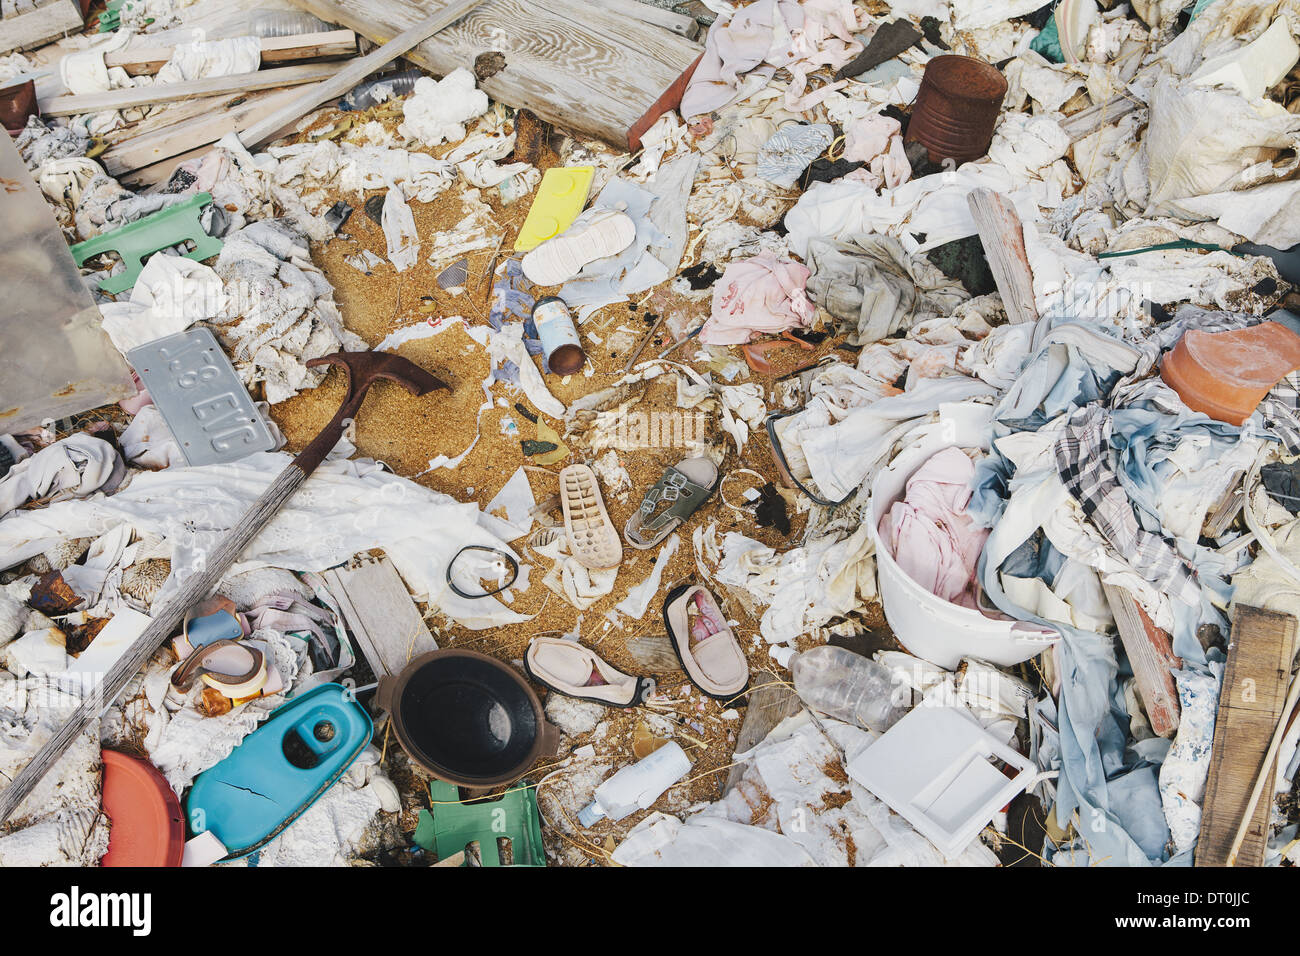 heap of garbage discarded Wooden plants plastic - Stock Image